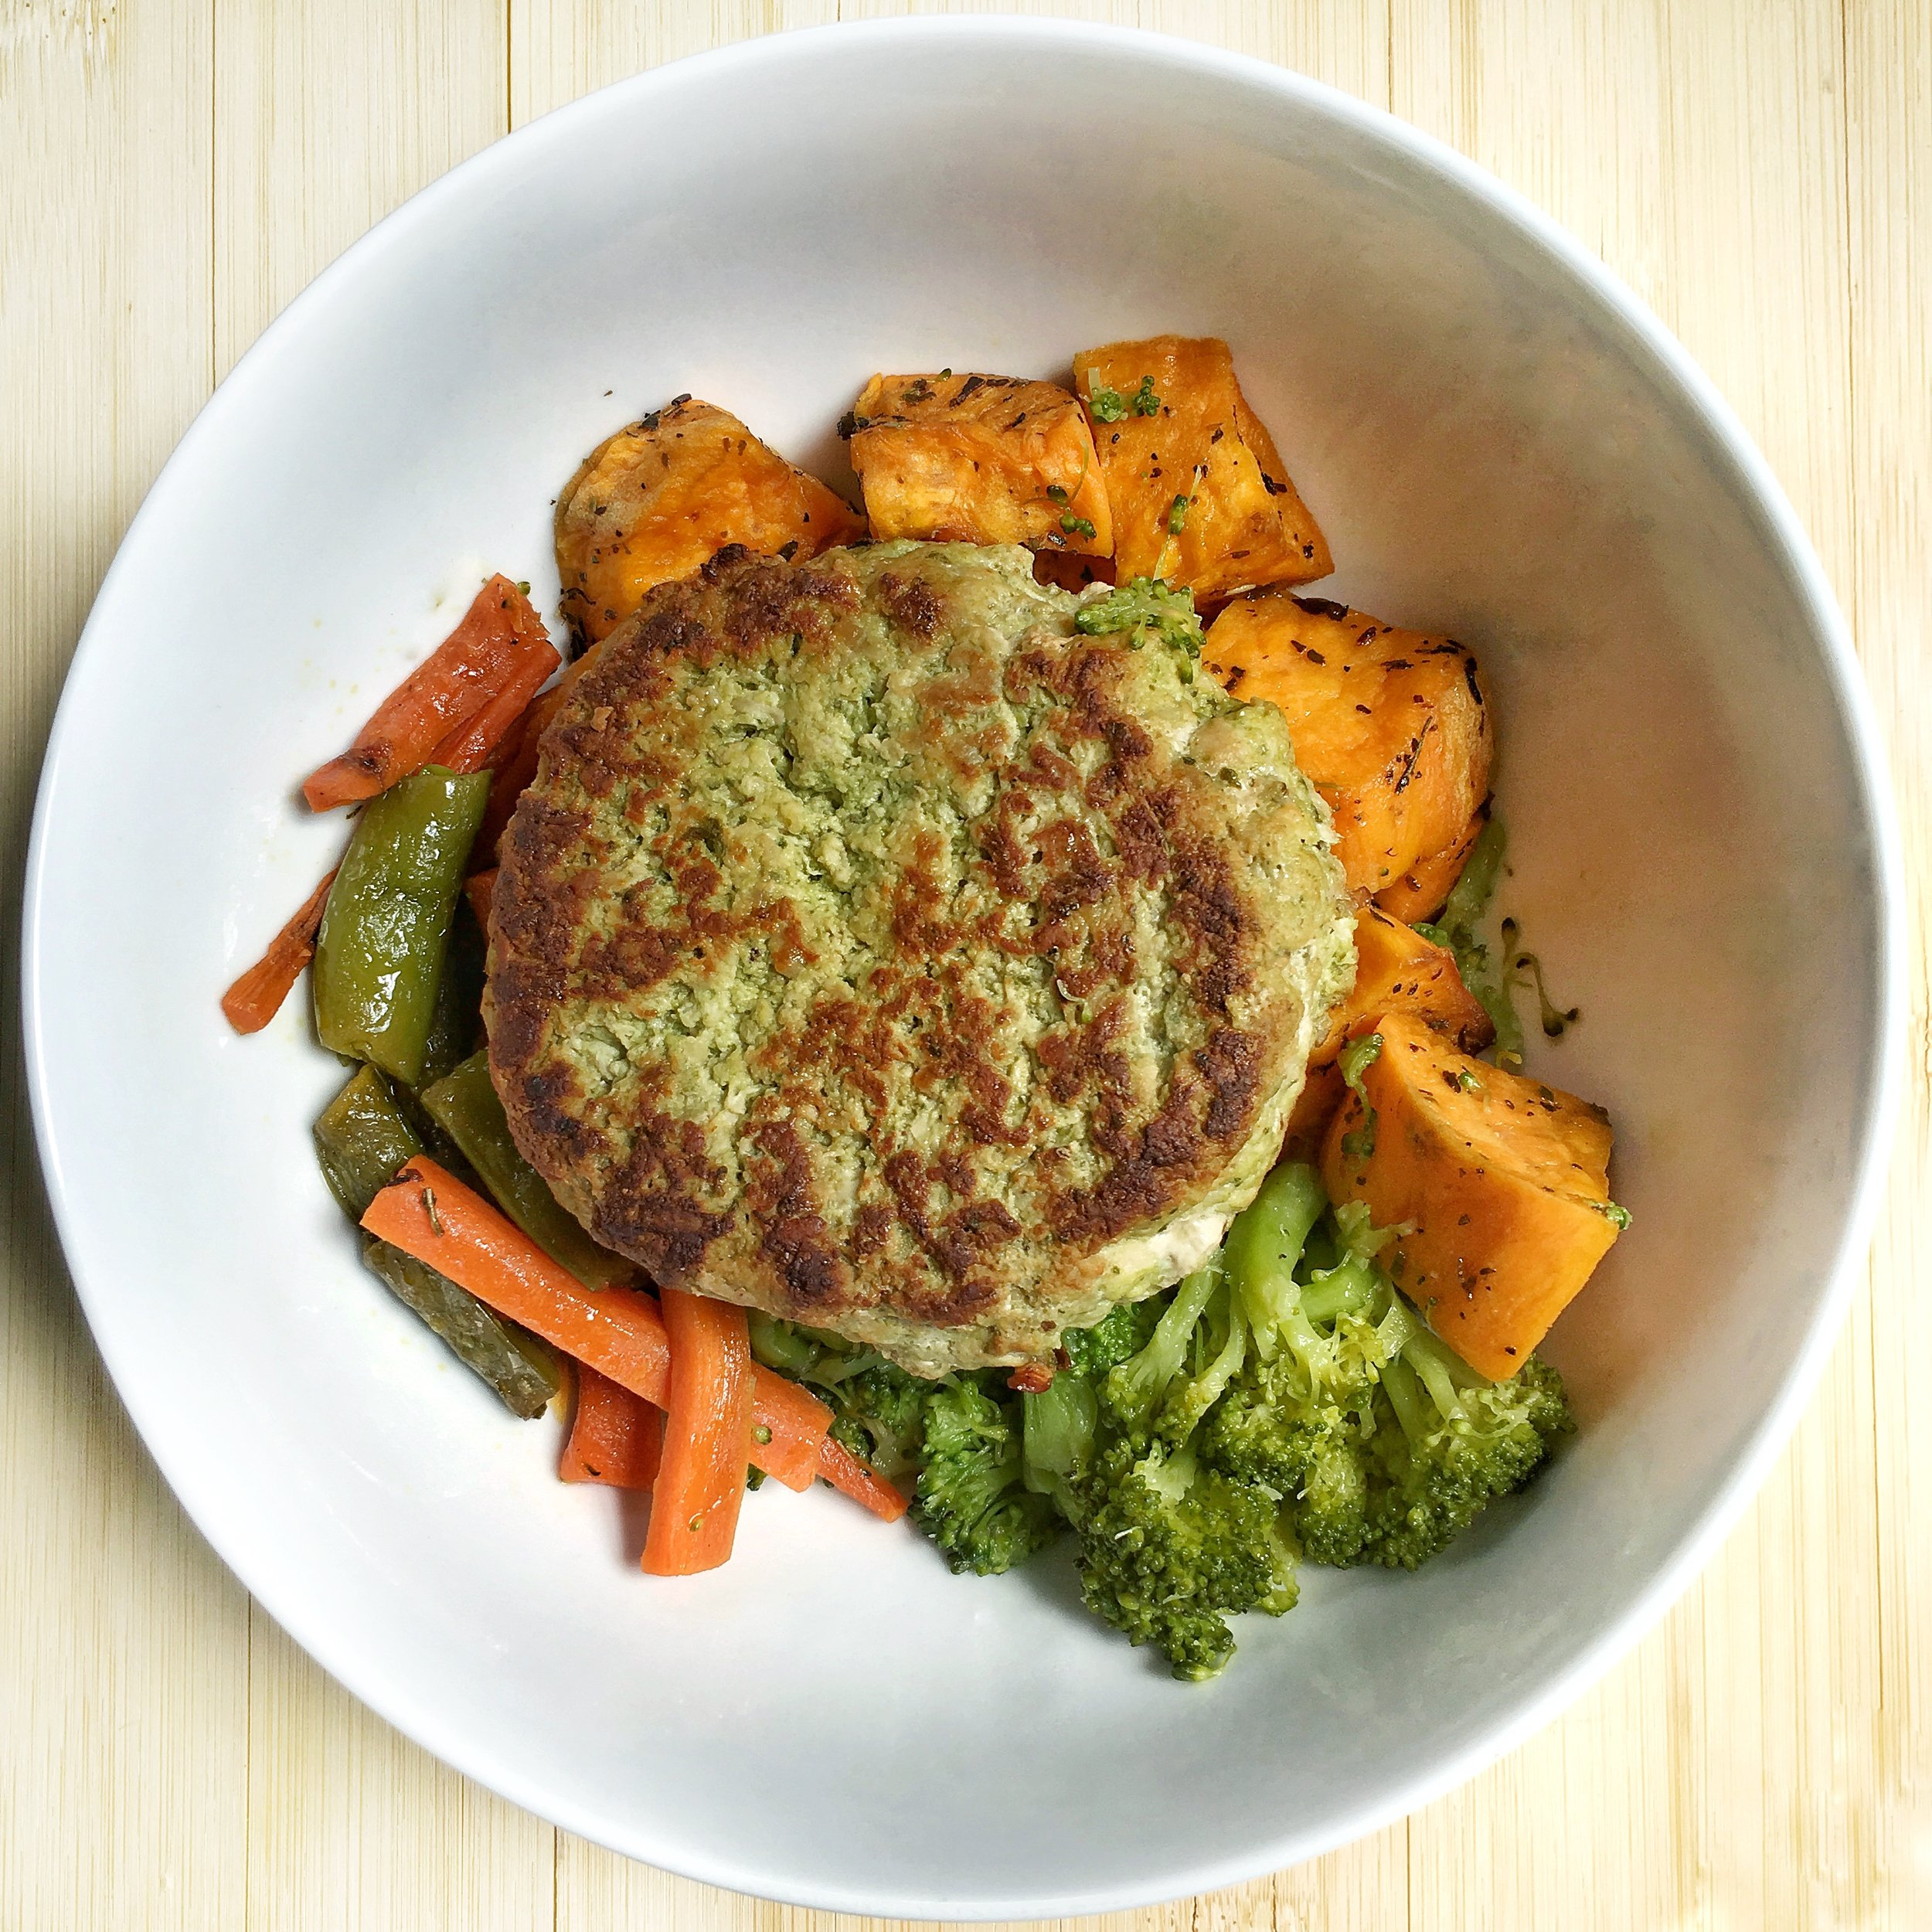 [Spinach Basil Pesto Chicken Burgers, oven roasted sweet potato, steamed broccoli, and teriyaki sautéed carrots and snap peas]